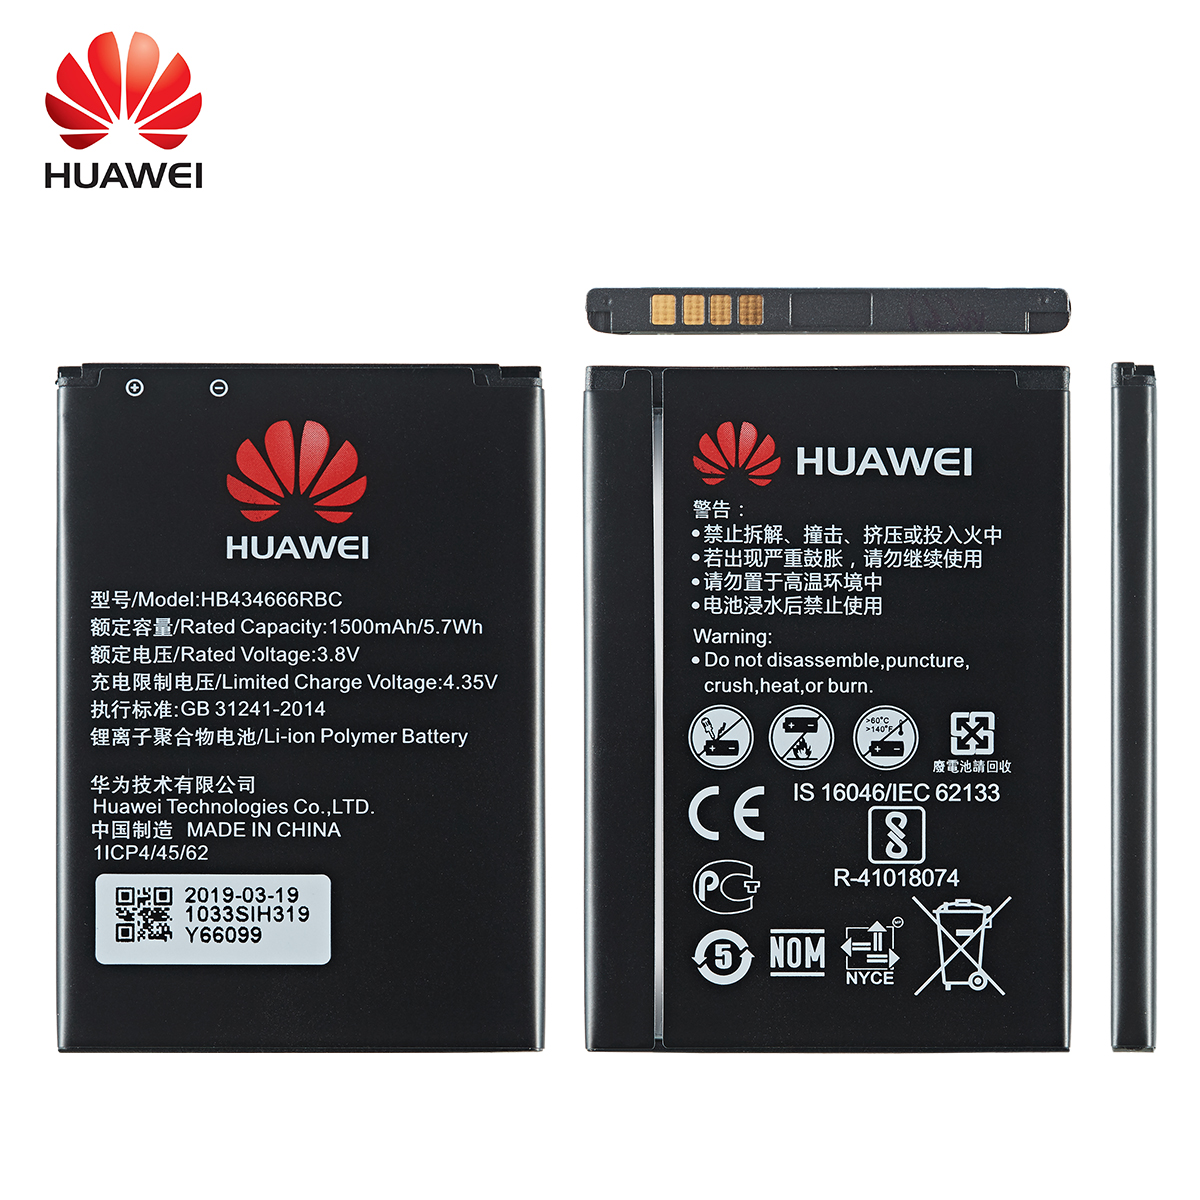 100% Orginal HB434666RBC Phone Battery 1500mAh For Huawei  Router E5573 E5573S E5573s-32 E5573s-320 E5573s-606 E5573s-806